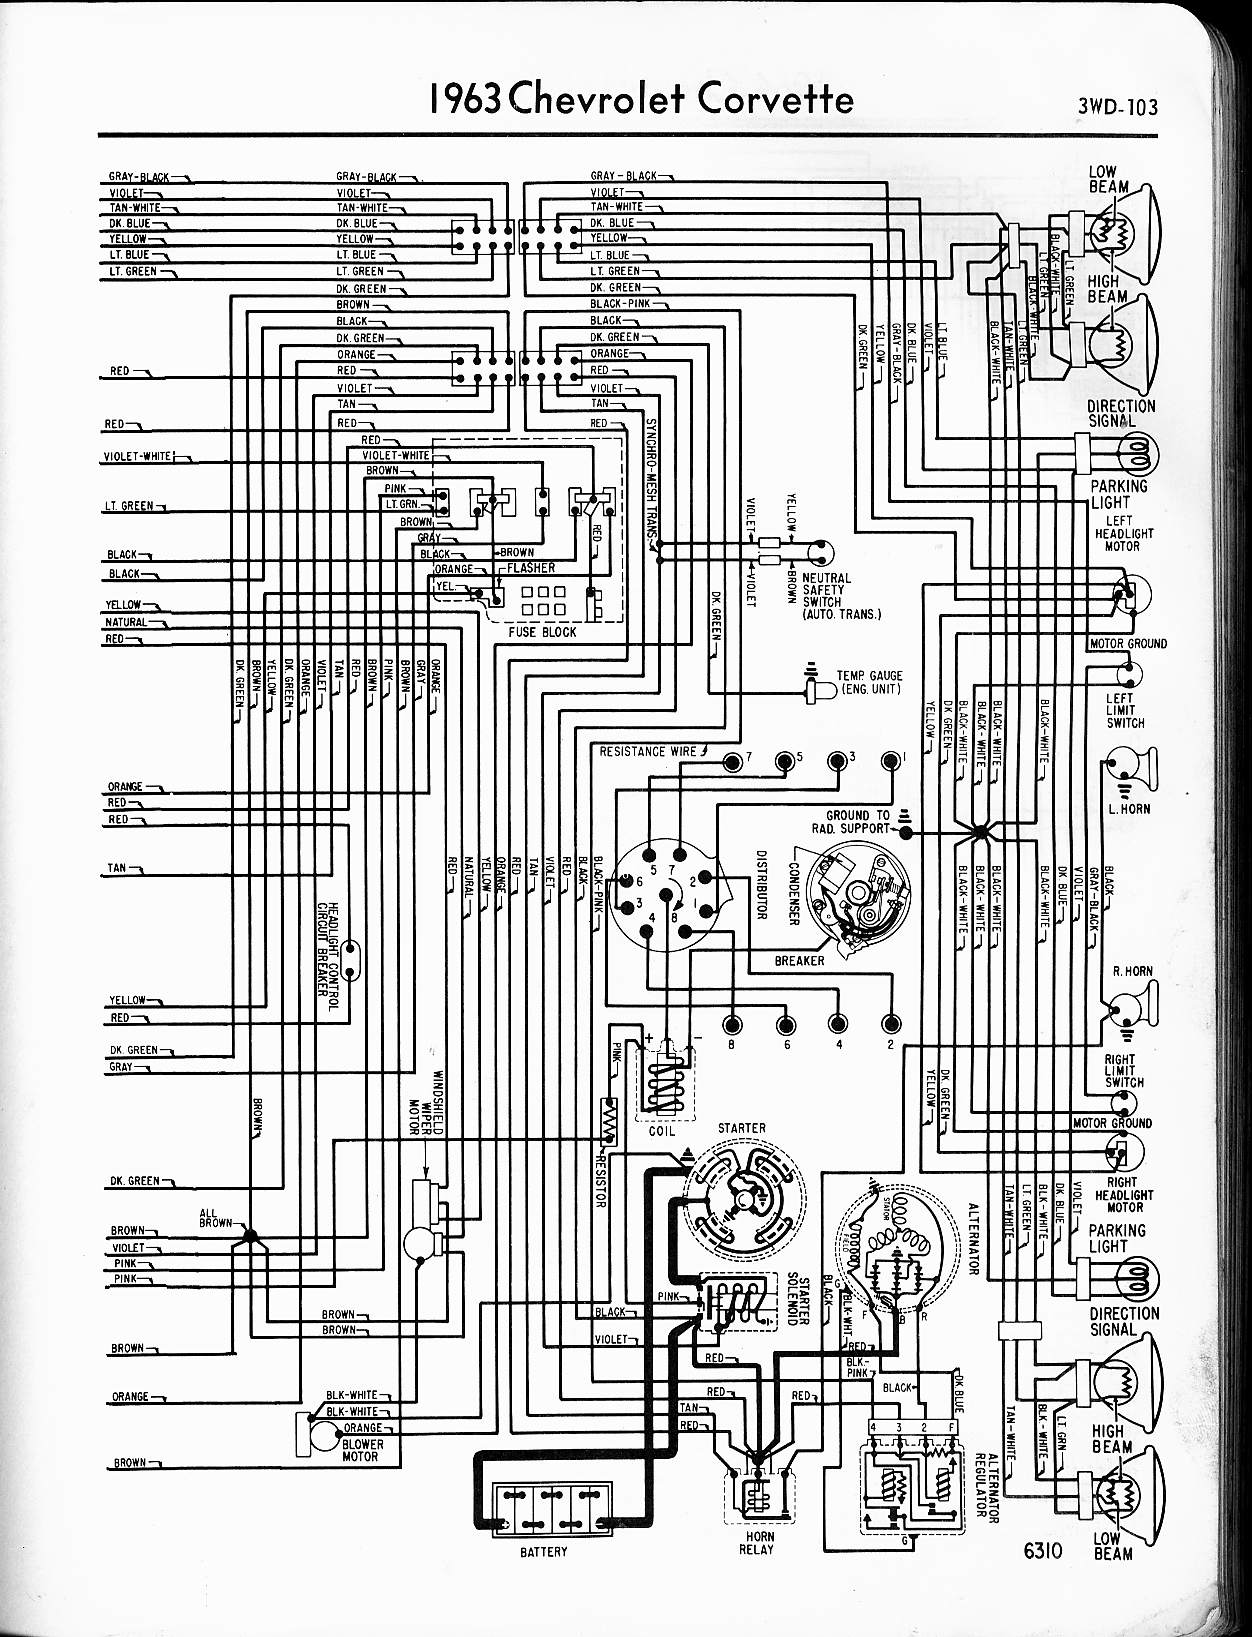 1967 corvette dash wiring schematic wiring data rh unroutine co